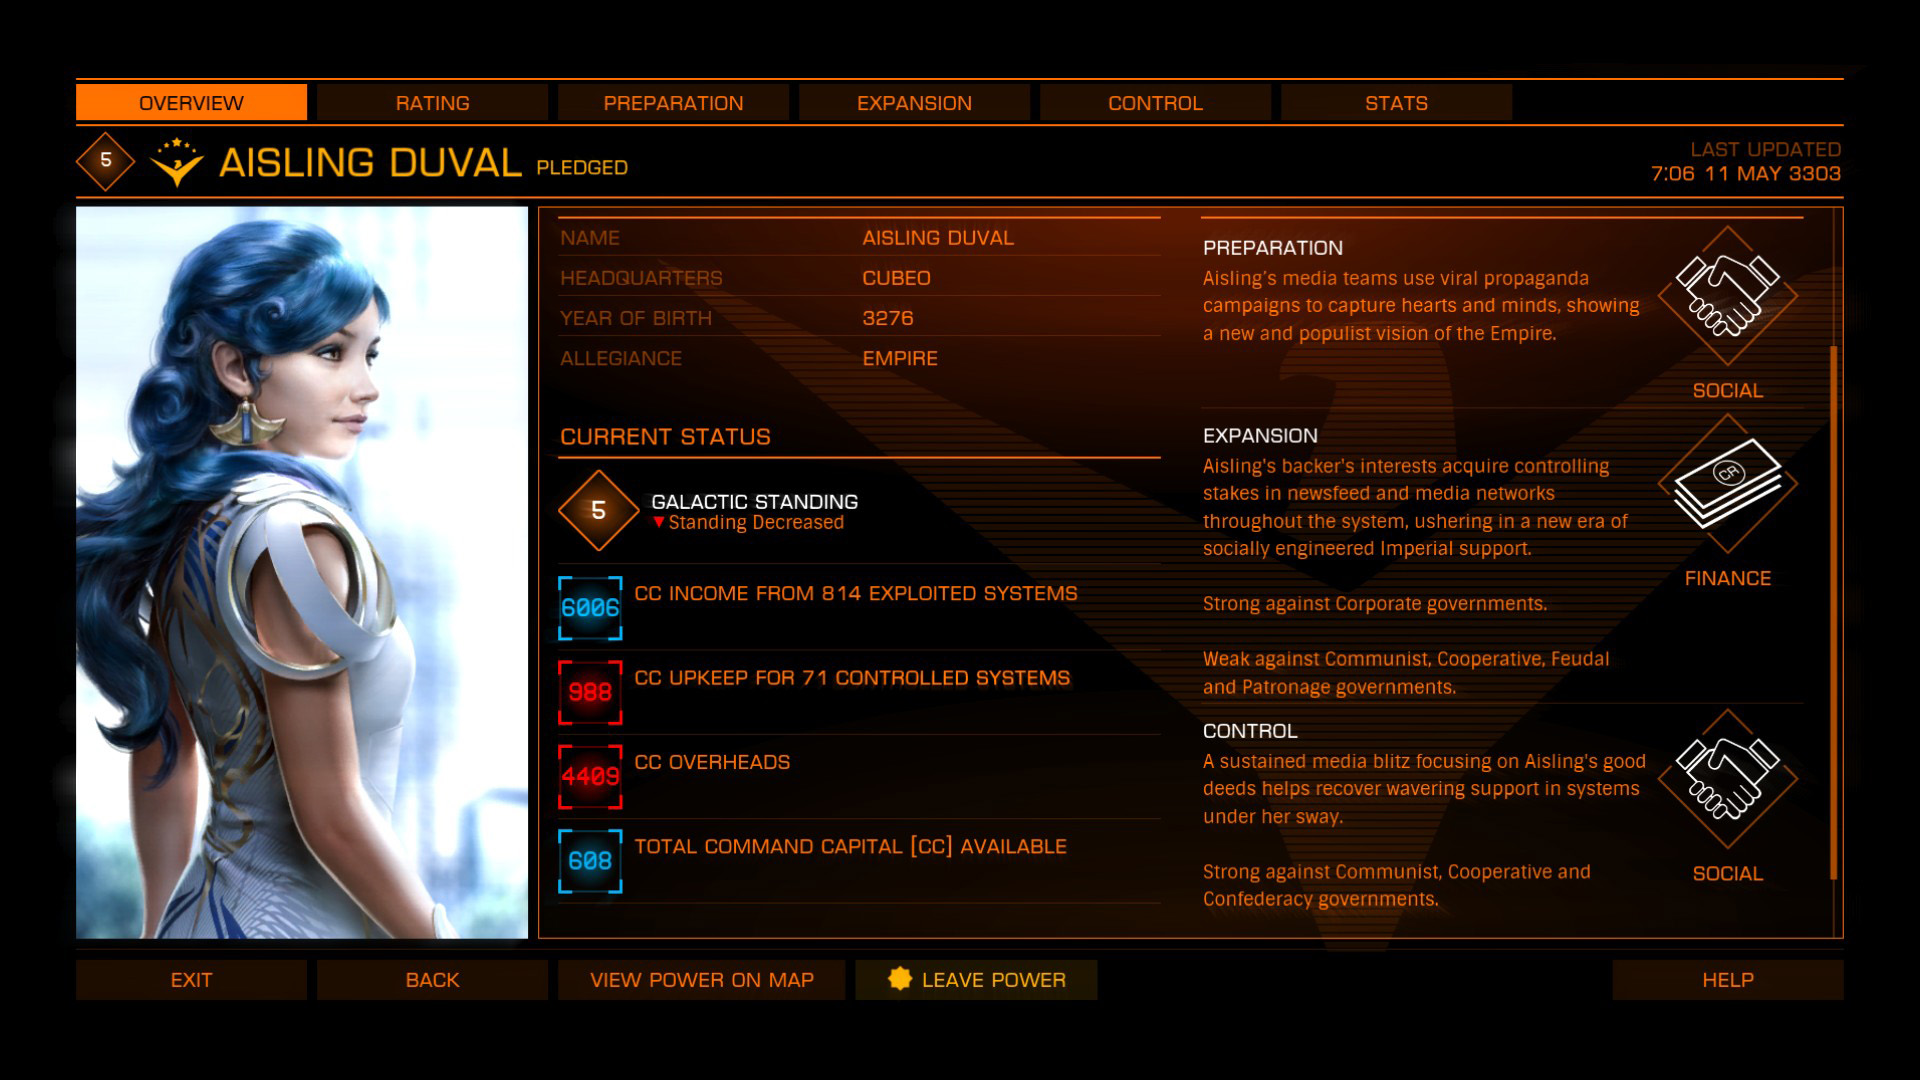 Elite: Dangerous beginner's guide: a screenshot showing command capital info for Aisling Duval